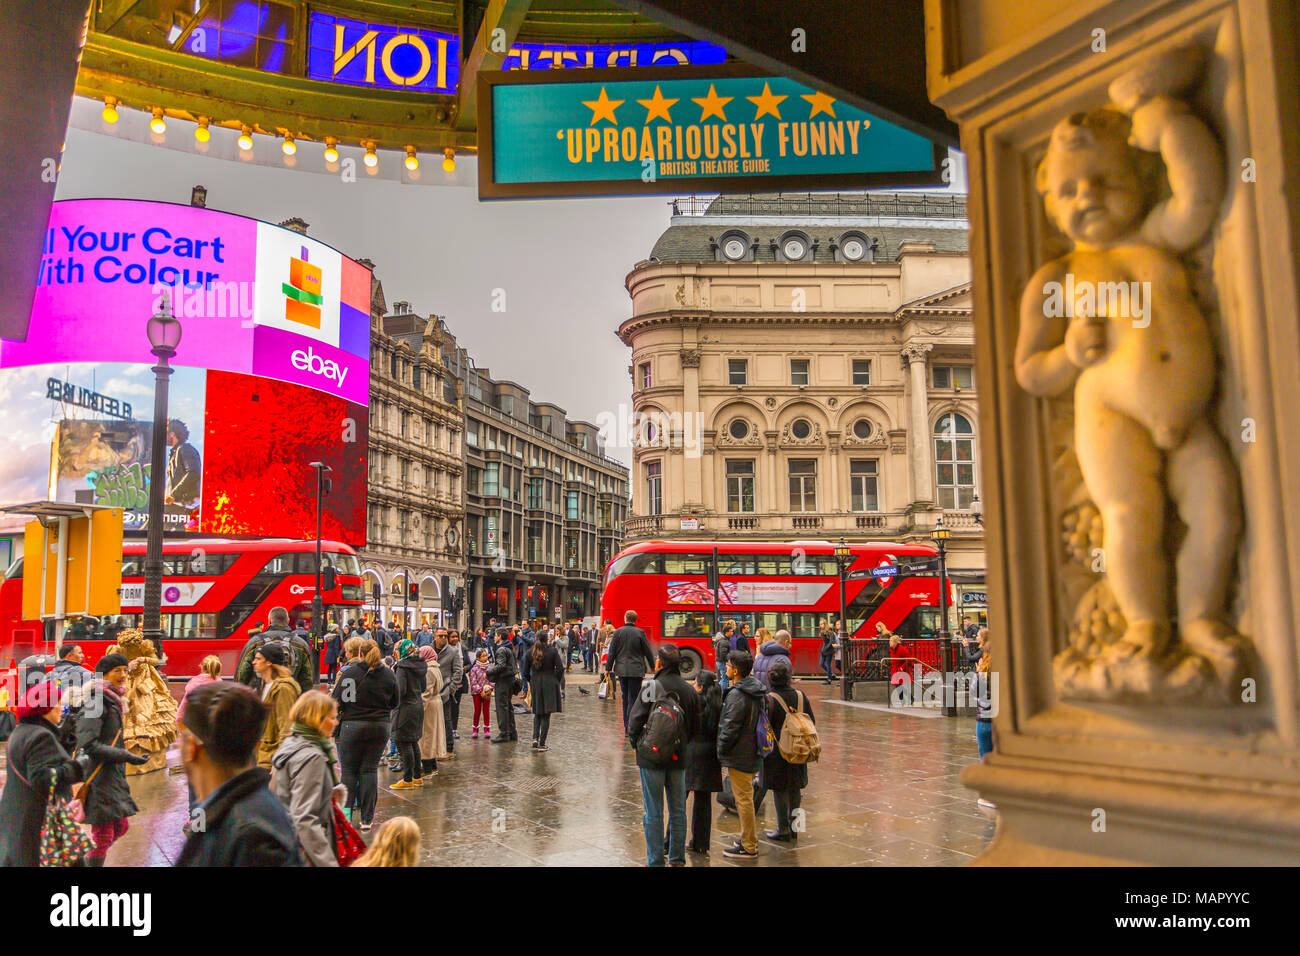 Red buses travelling through Piccadilly Circus from the Criterion Theatre, London, England, United Kingdom, Europe Stock Photo